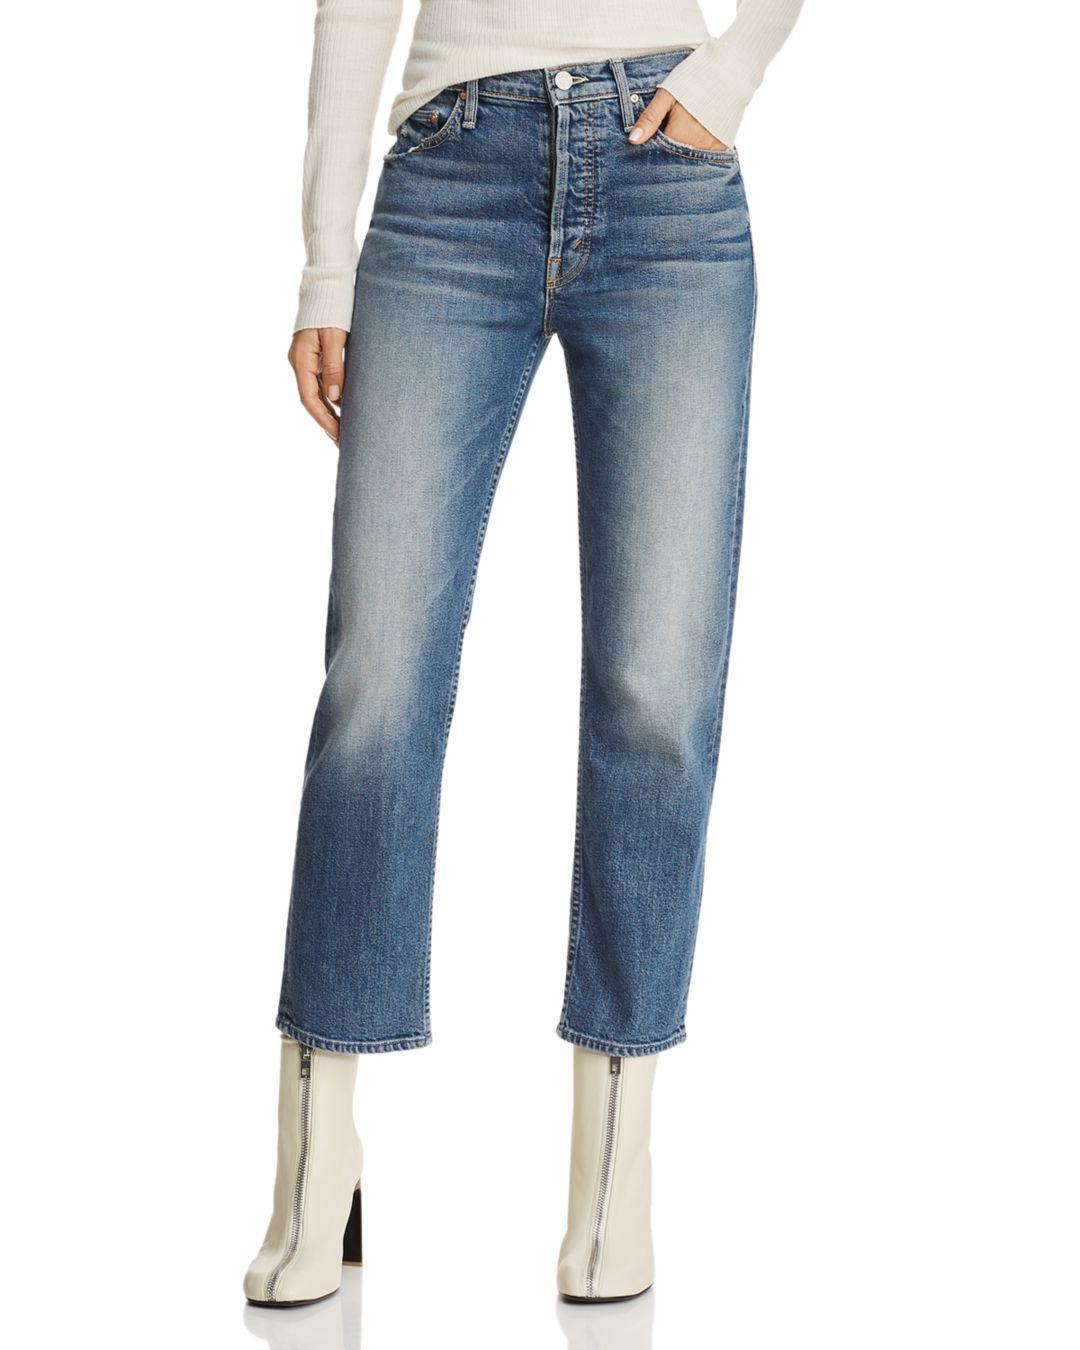 a6d3af3e4cd34 Lyst - Mother The Tomcat High-rise Straight-leg Jeans In We All ...